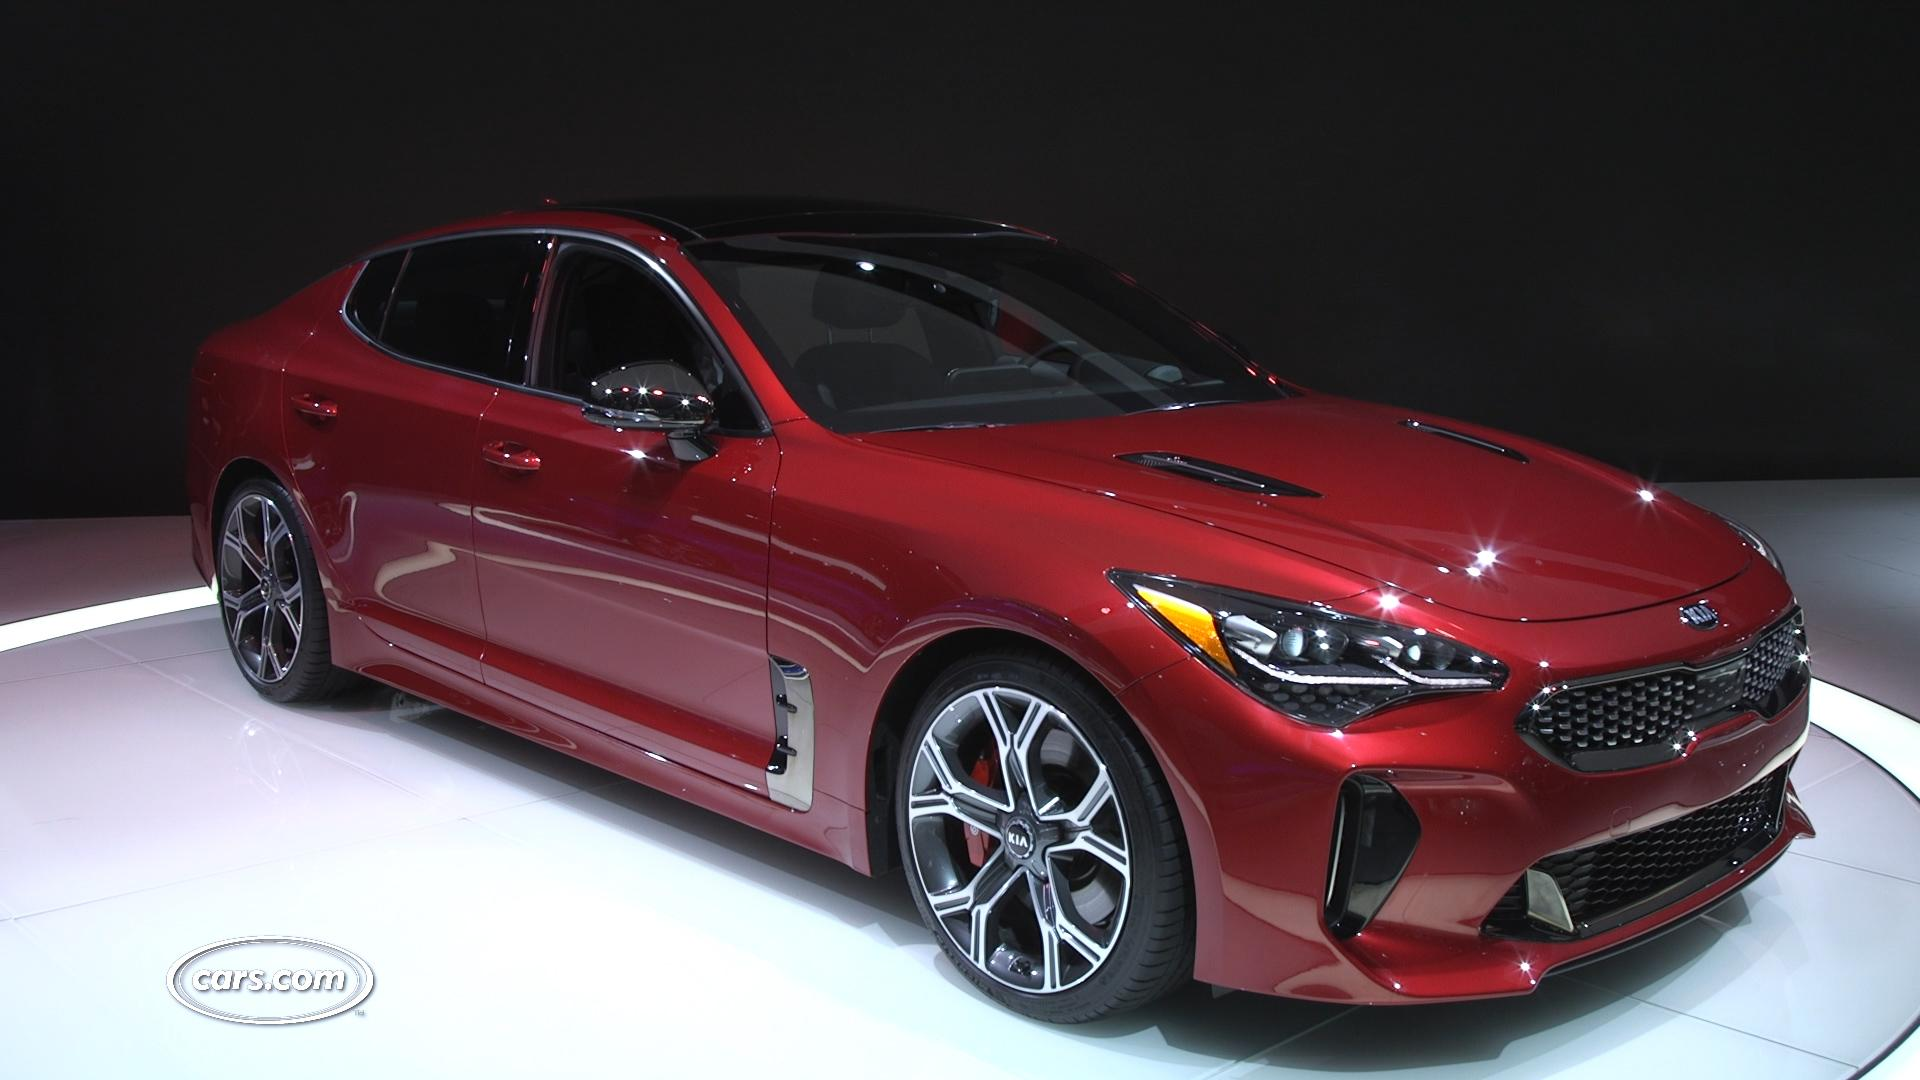 2018 Kia Stinger Video Review